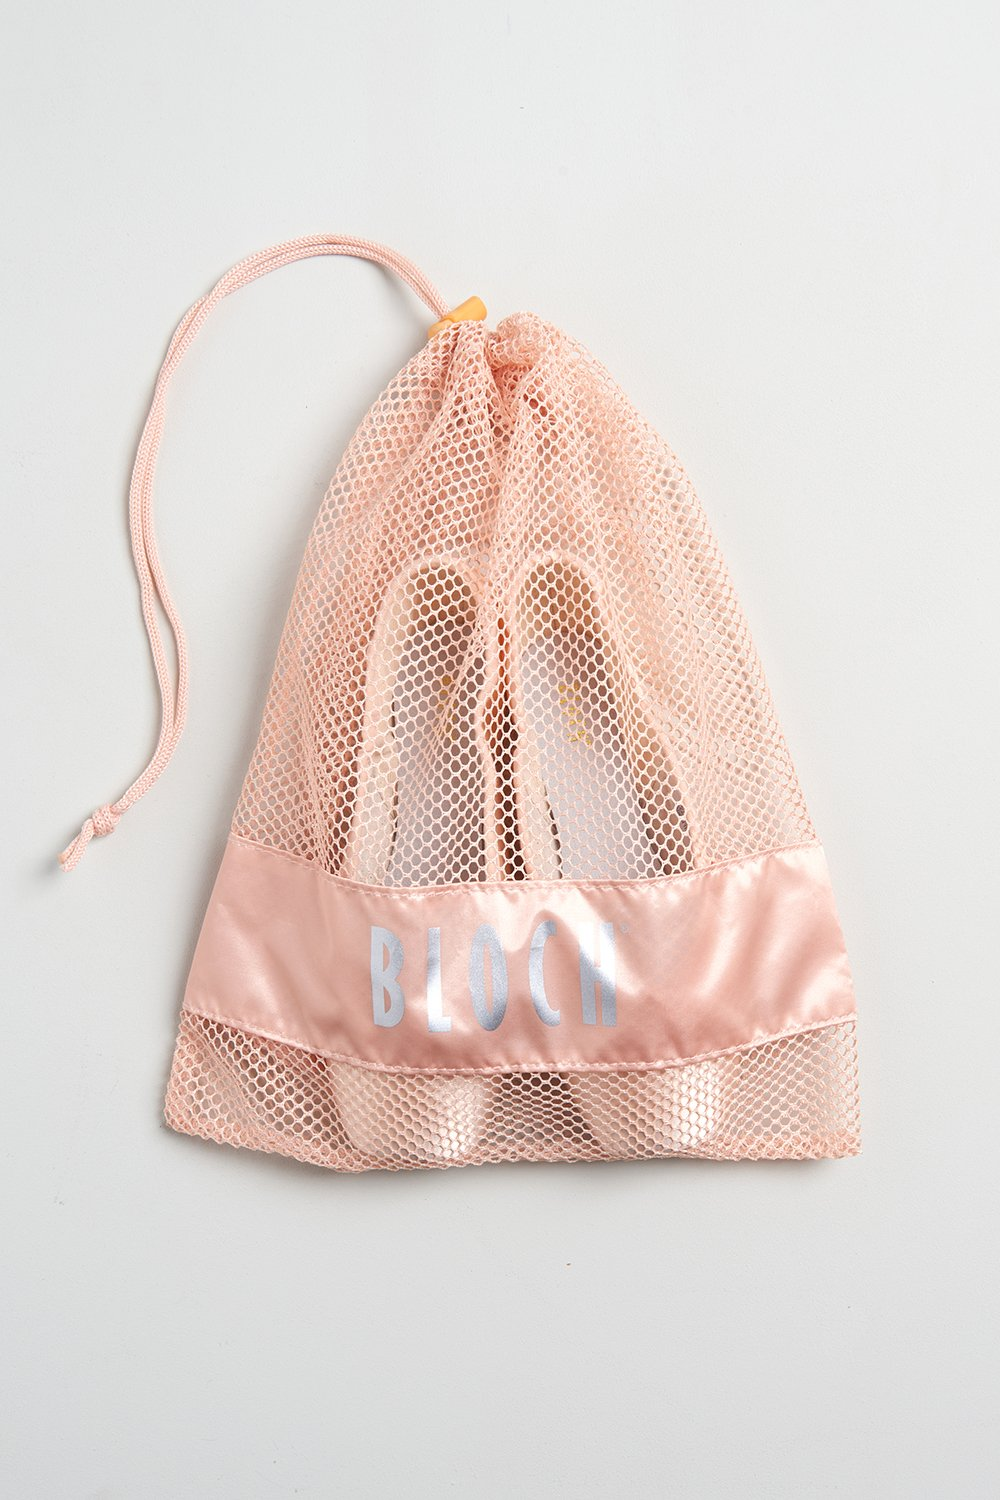 Pointe Shoe Bag Large - BLOCH US